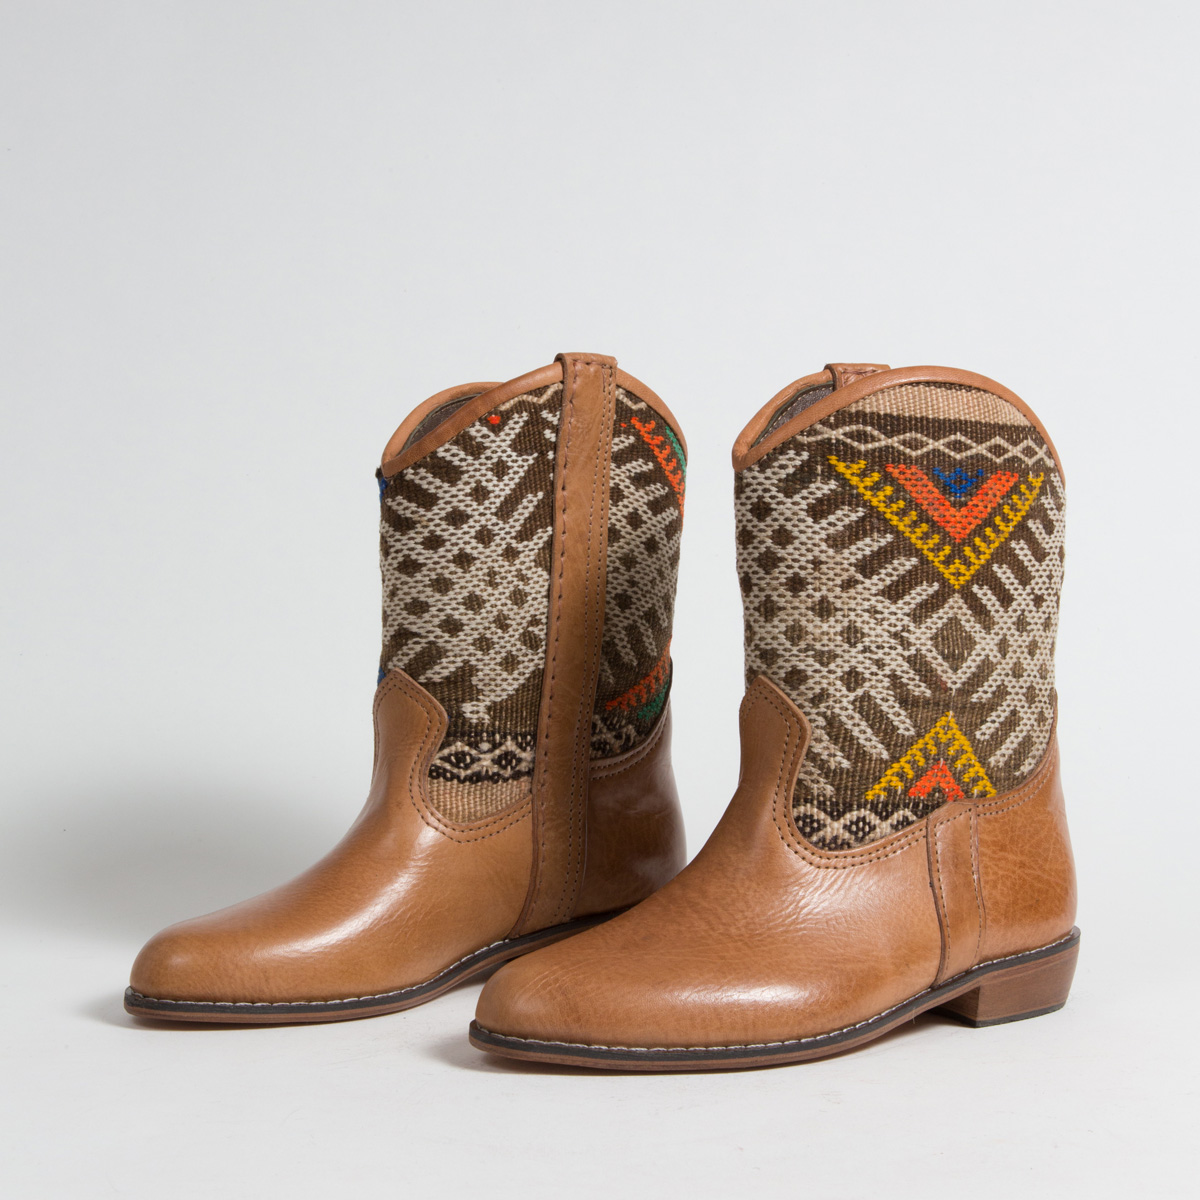 Bottines Kilim cuir mababouche artisanales (Réf. P3-37)